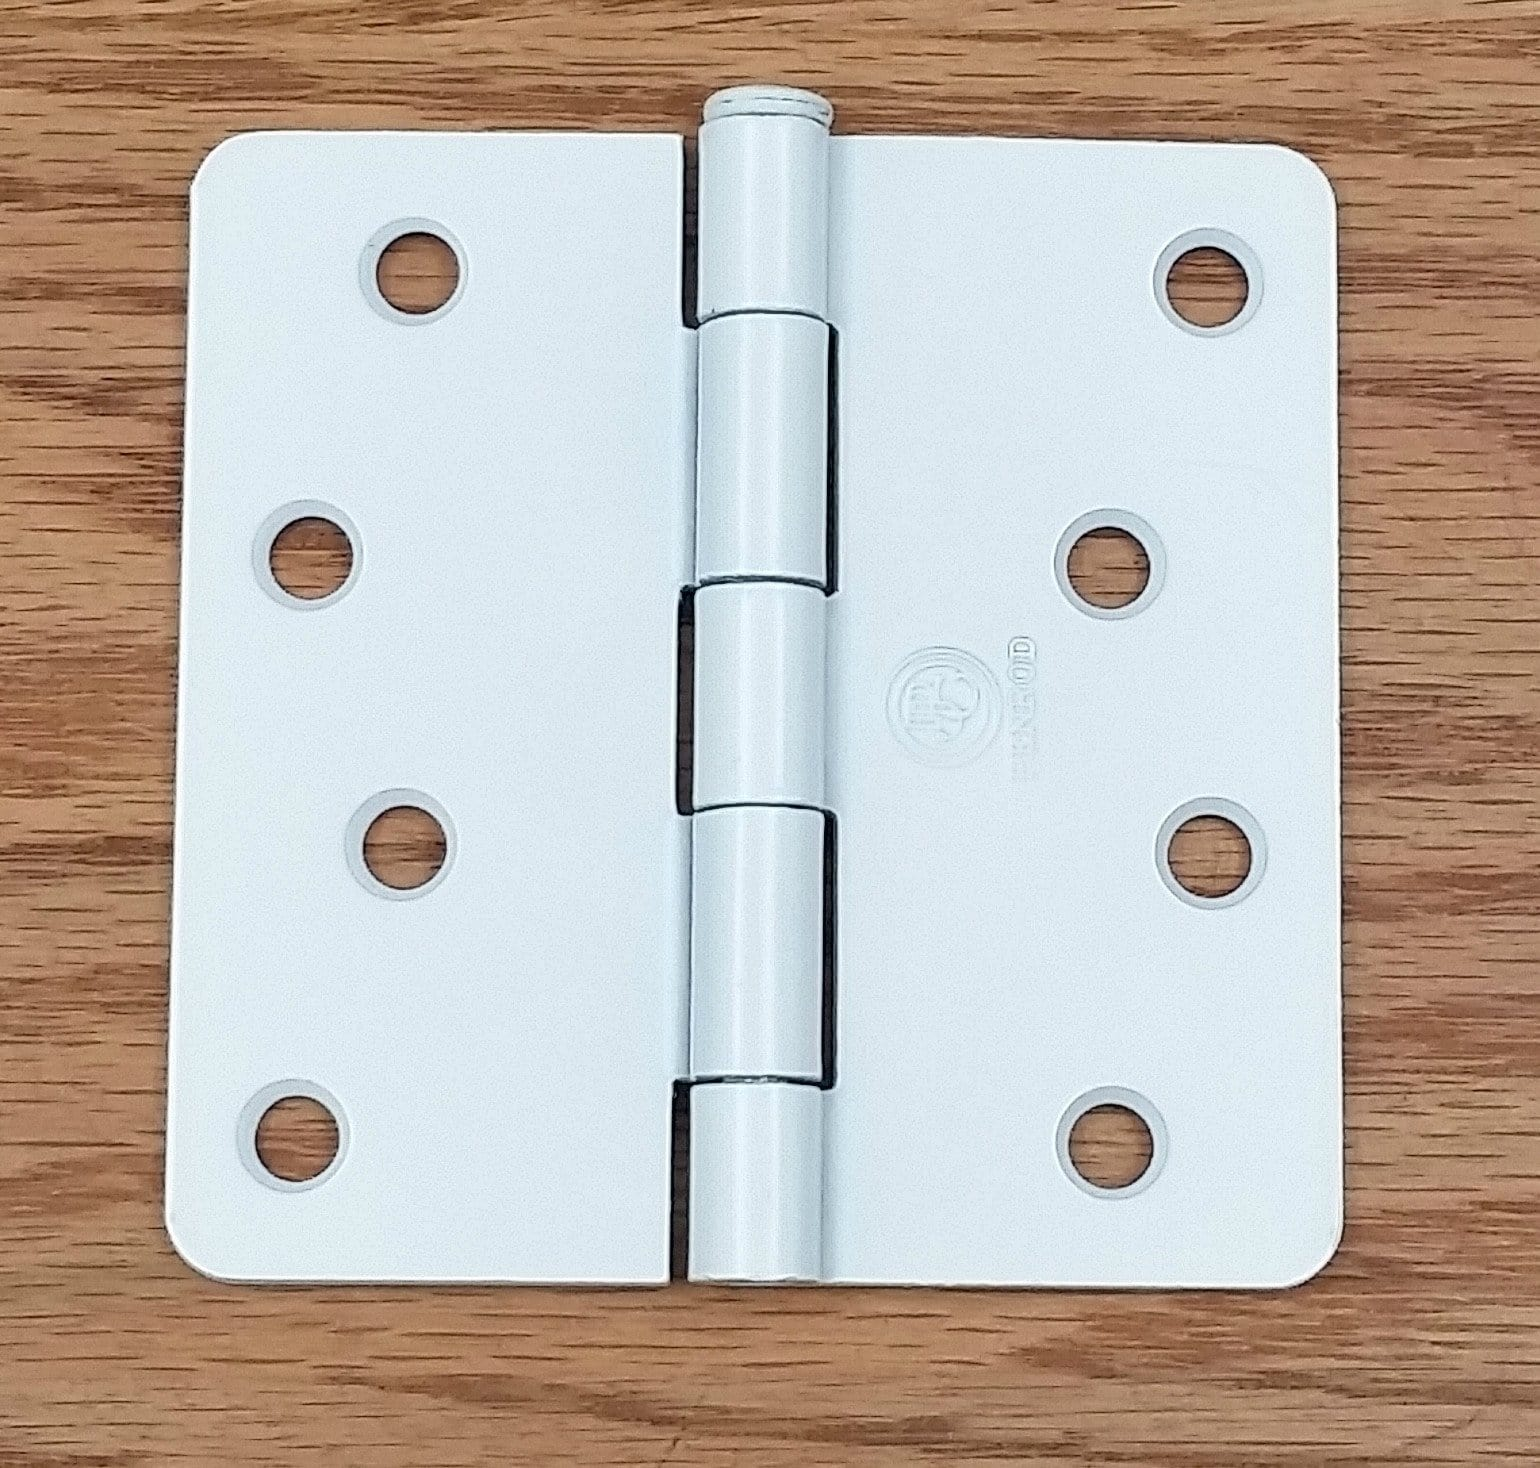 Residential Penrod Butt Hinges - 4 inch with 1/4 inch Radius Corner Plain Bearing- White Prime - 2 Pack